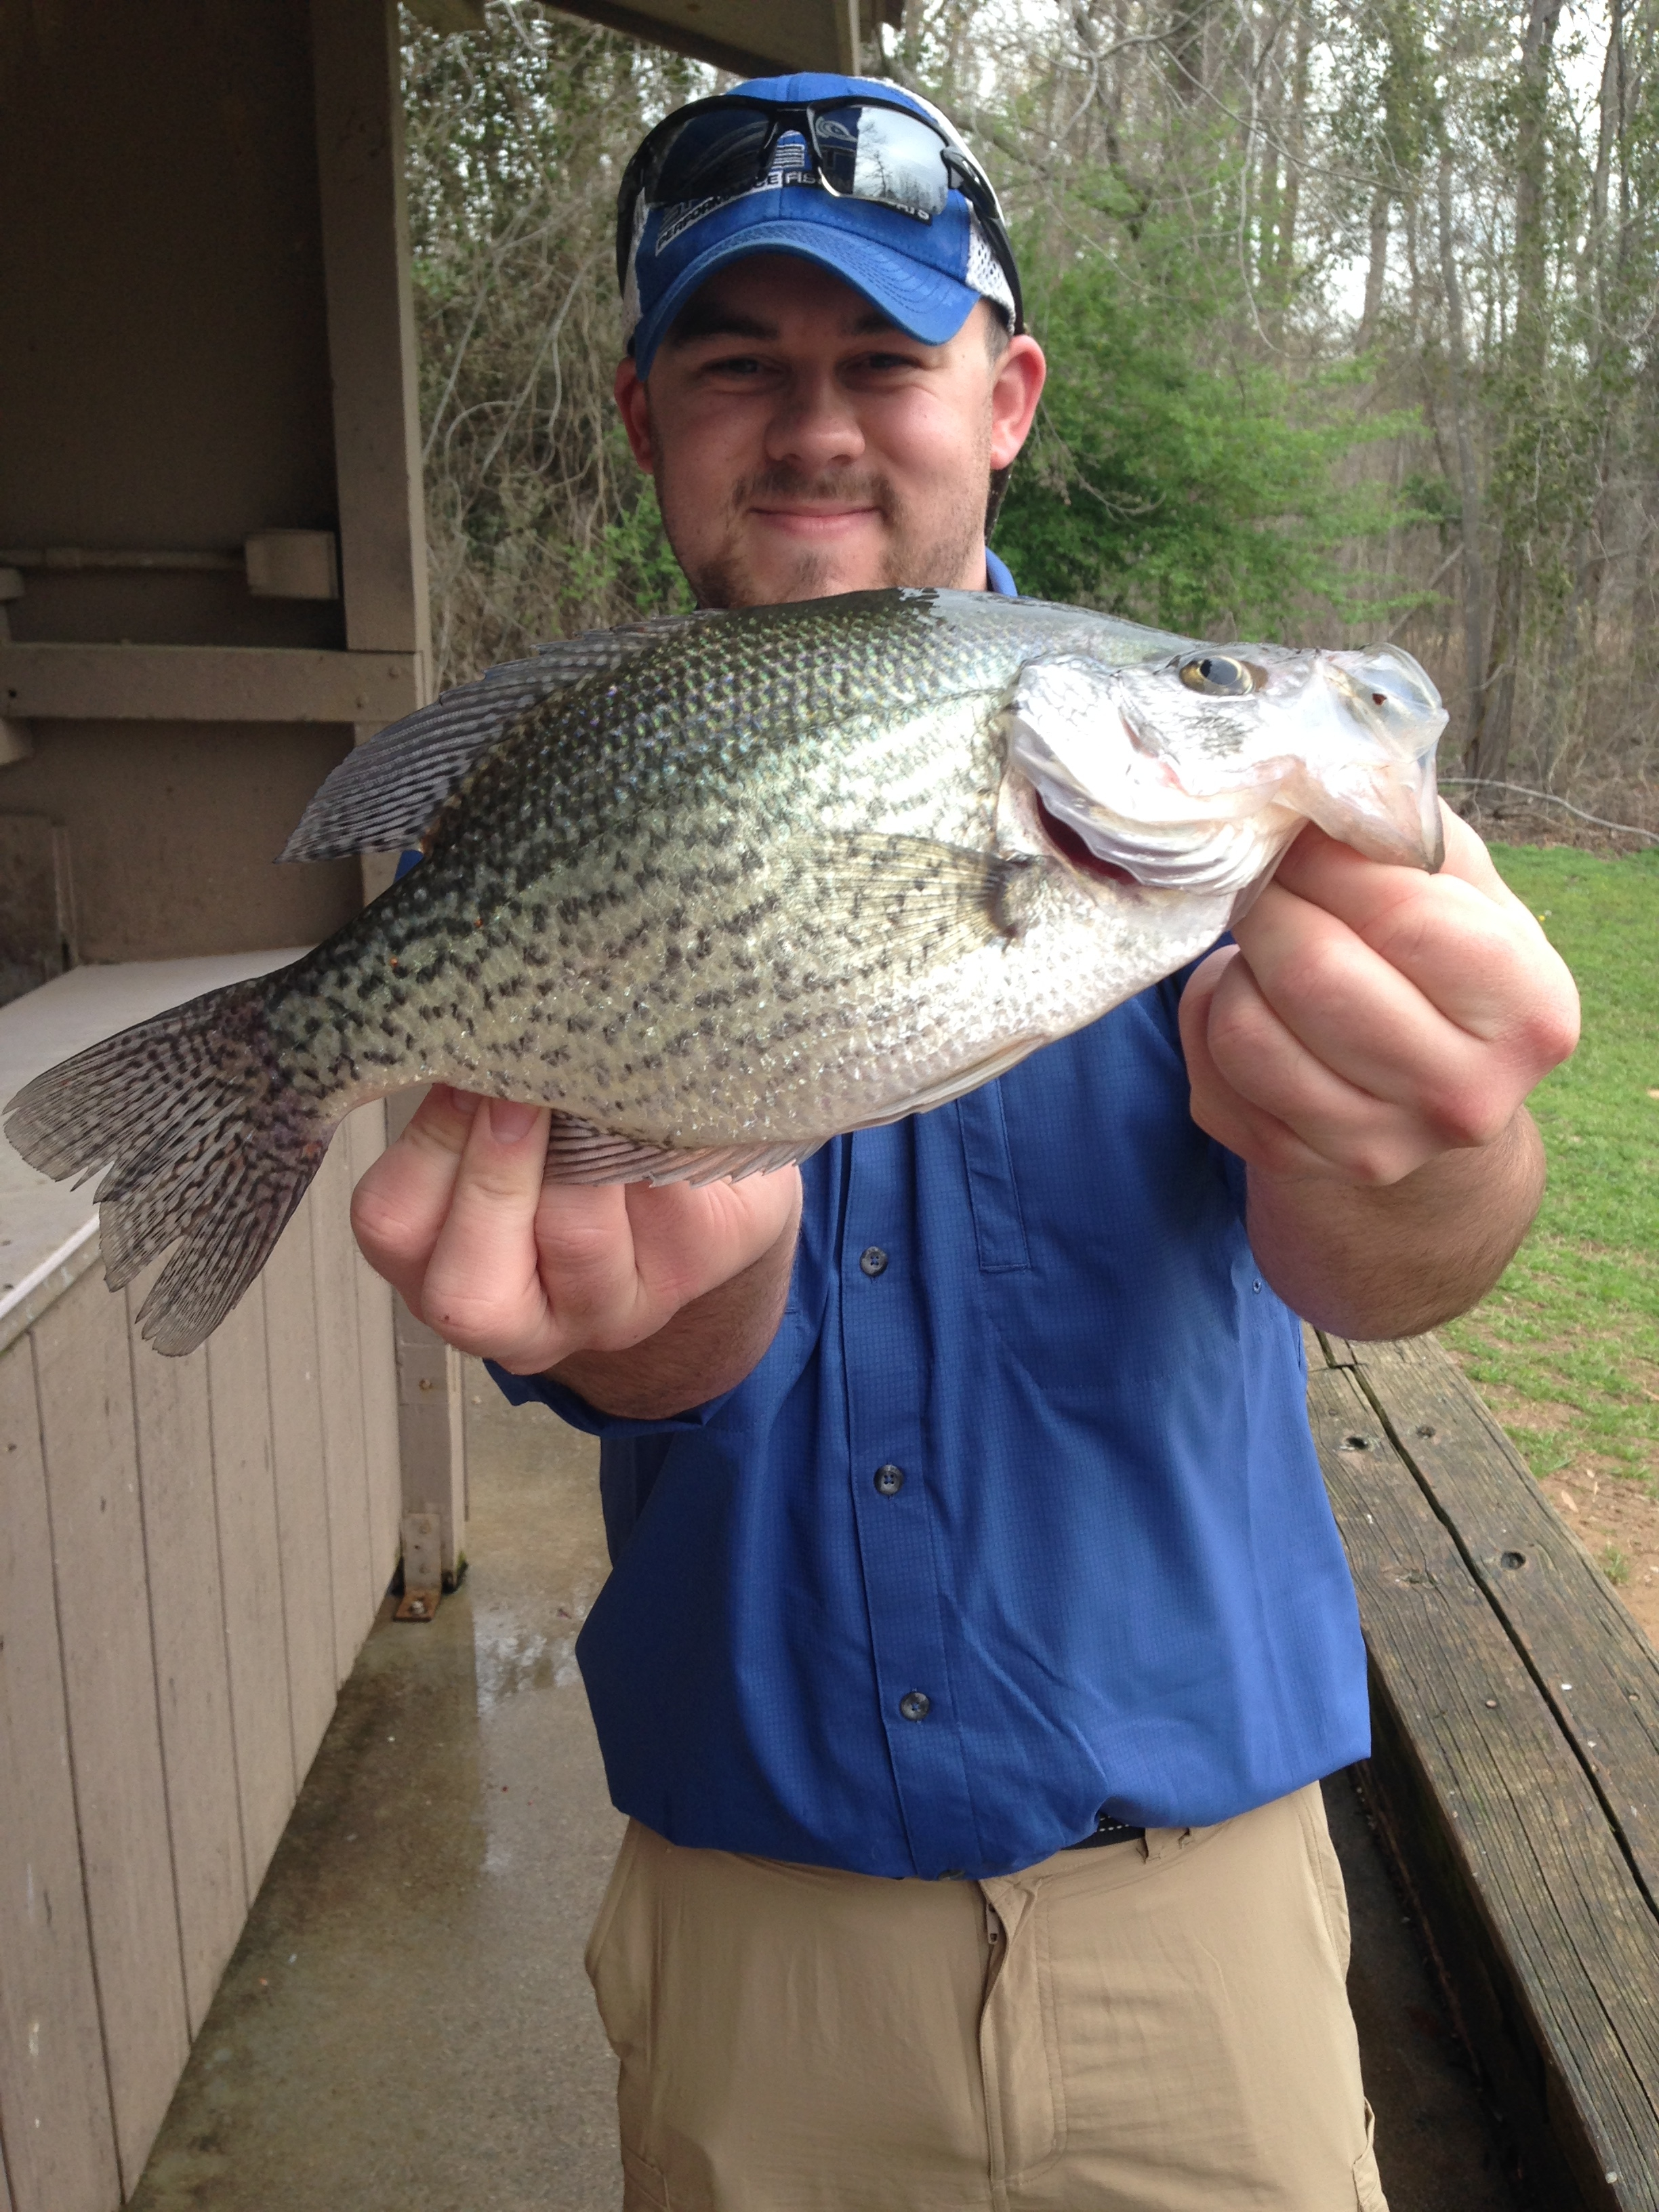 March 20, 2018 crappie